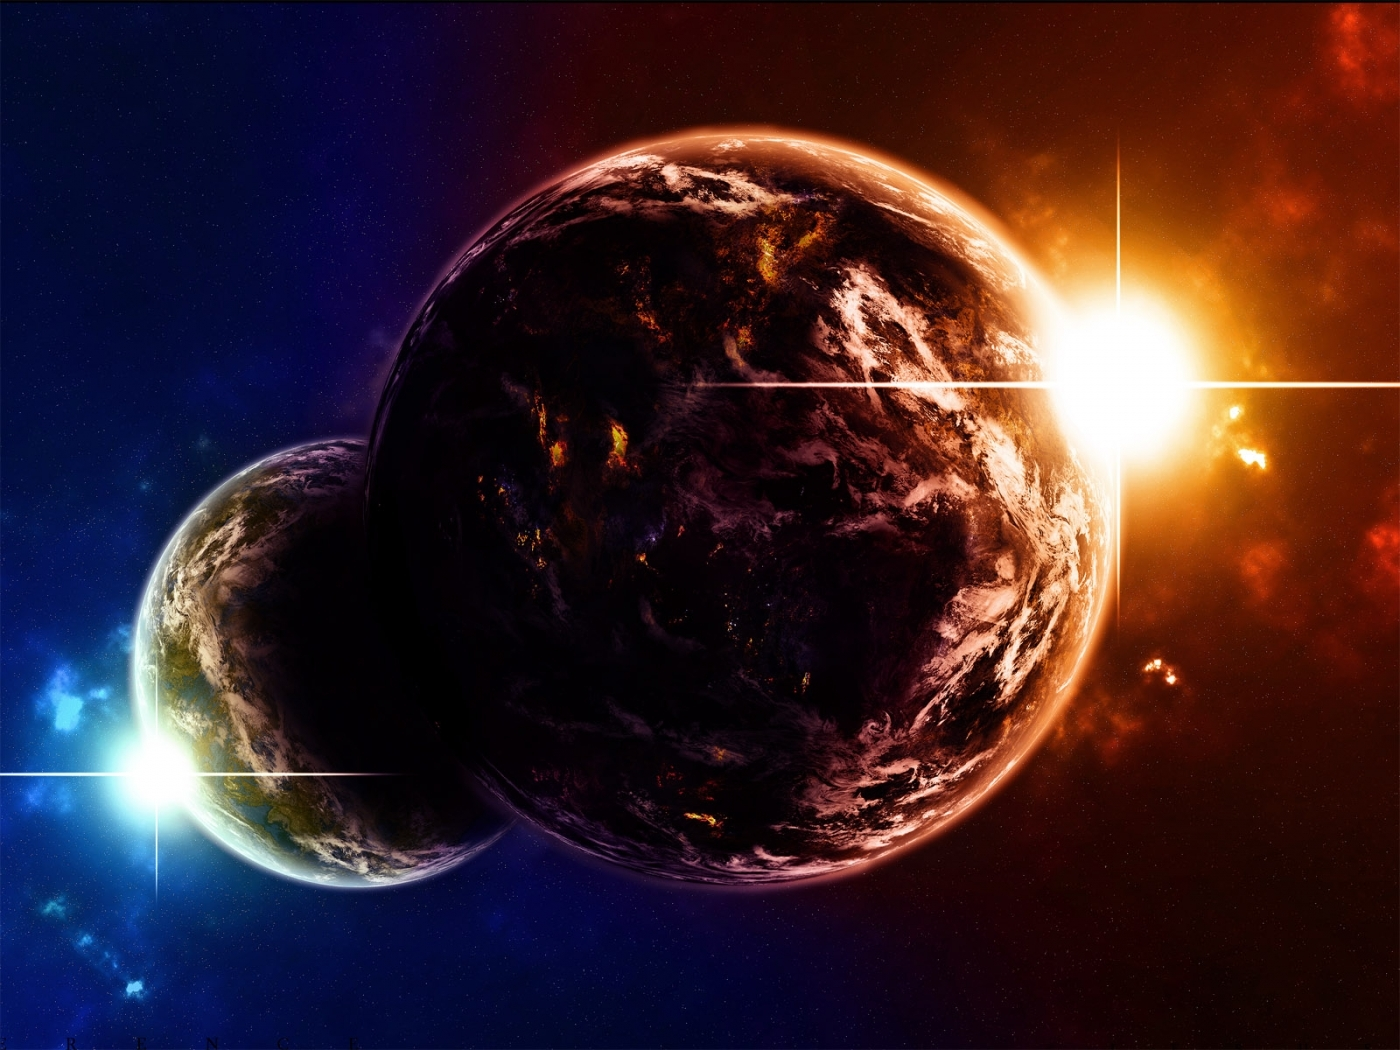 41479 download wallpaper Background, Planets screensavers and pictures for free